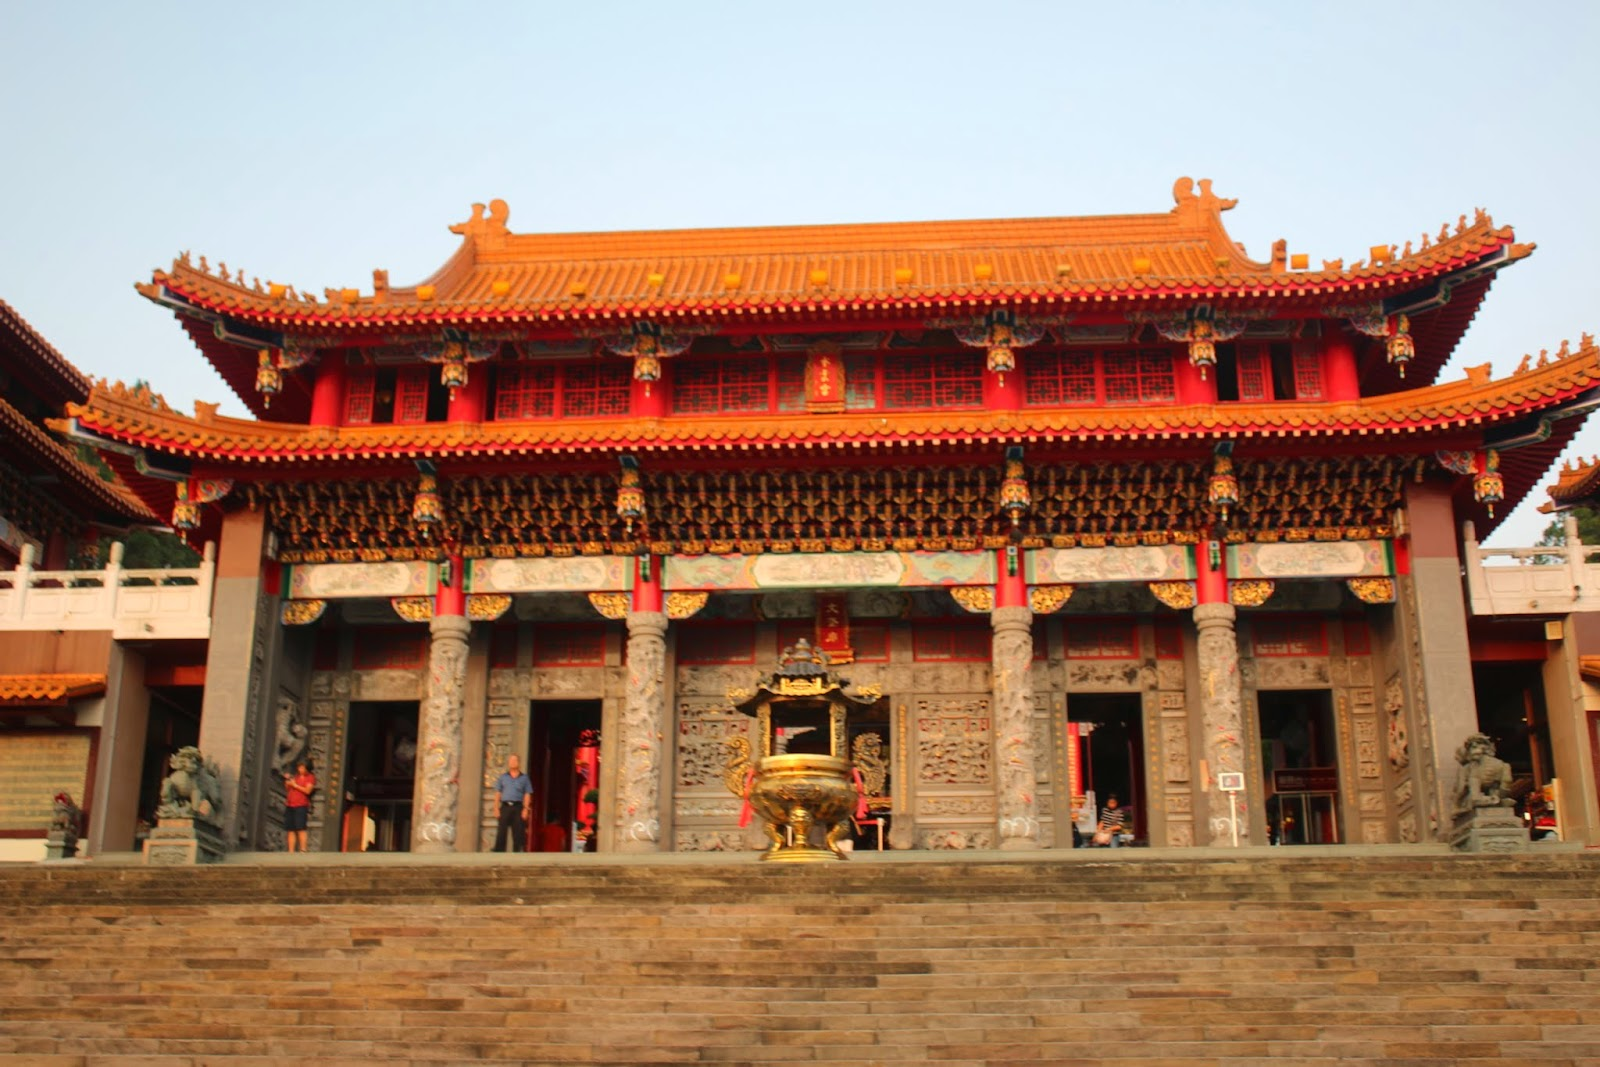 The main temple of Wenwu Temple as you walk through the gate entrance in Puli County of Taiwan